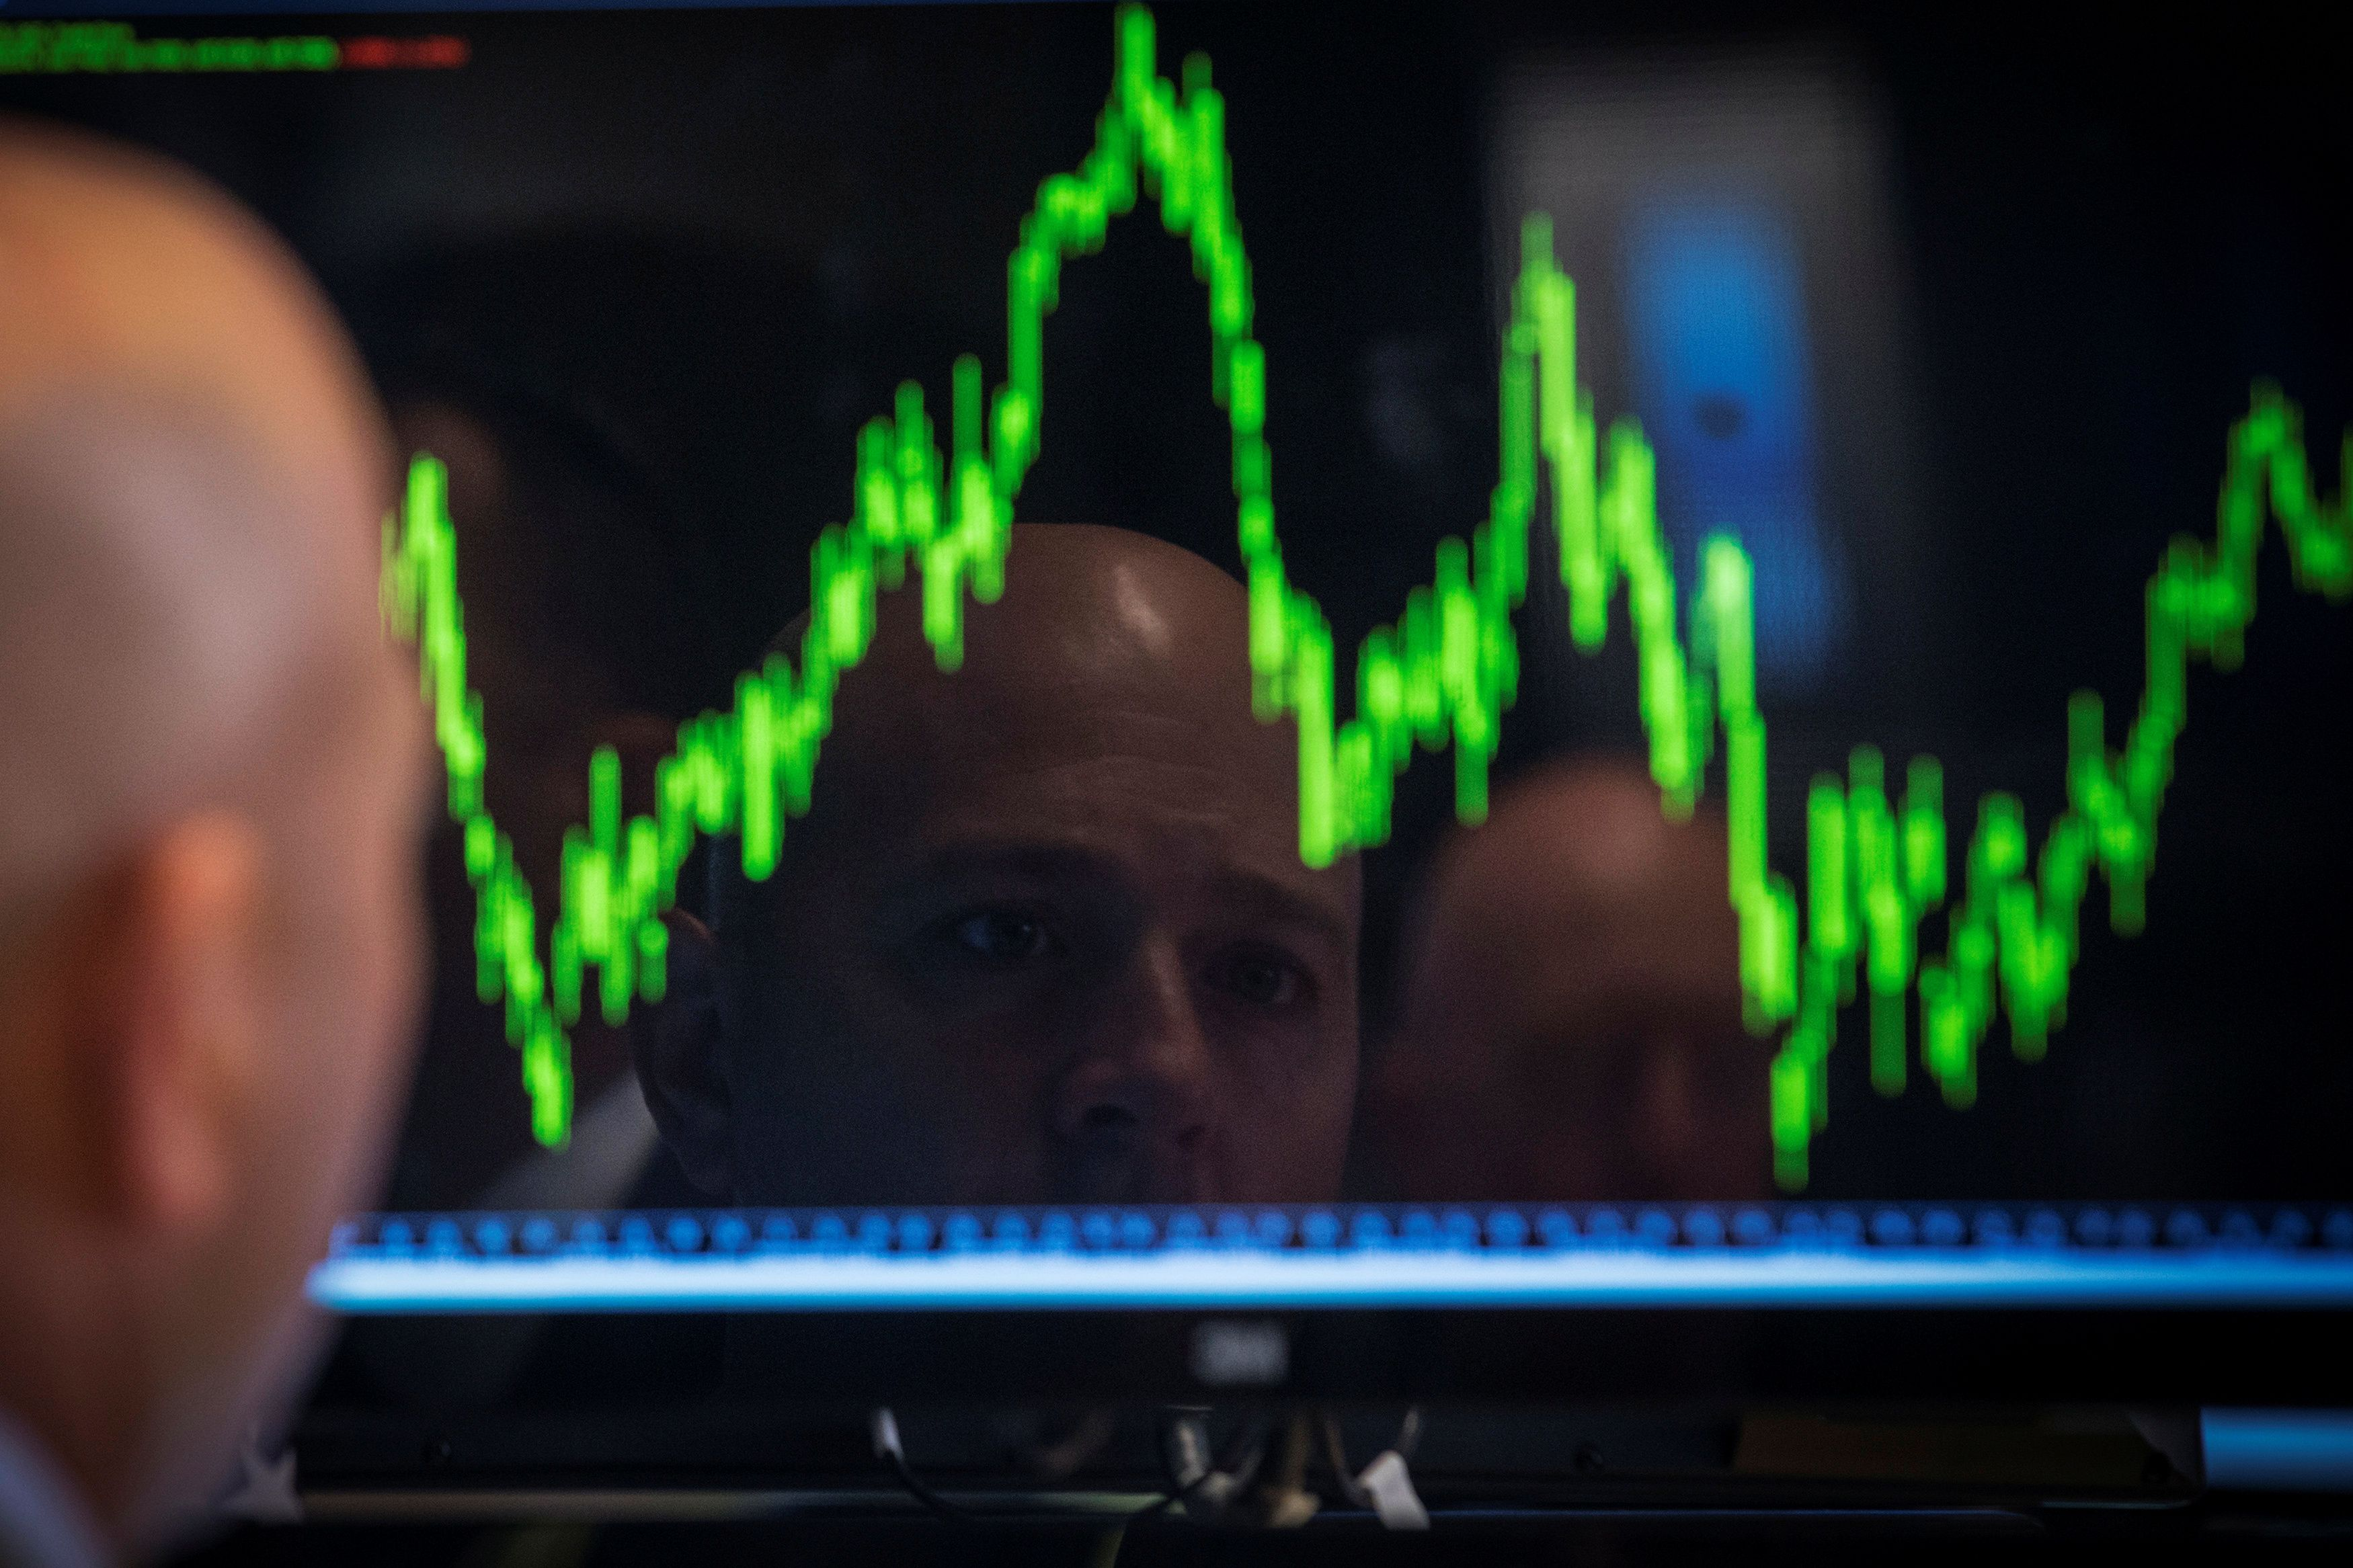 A bald man looks at a screen showing a volatile stock chart on the floor of the New York Stock exchange.